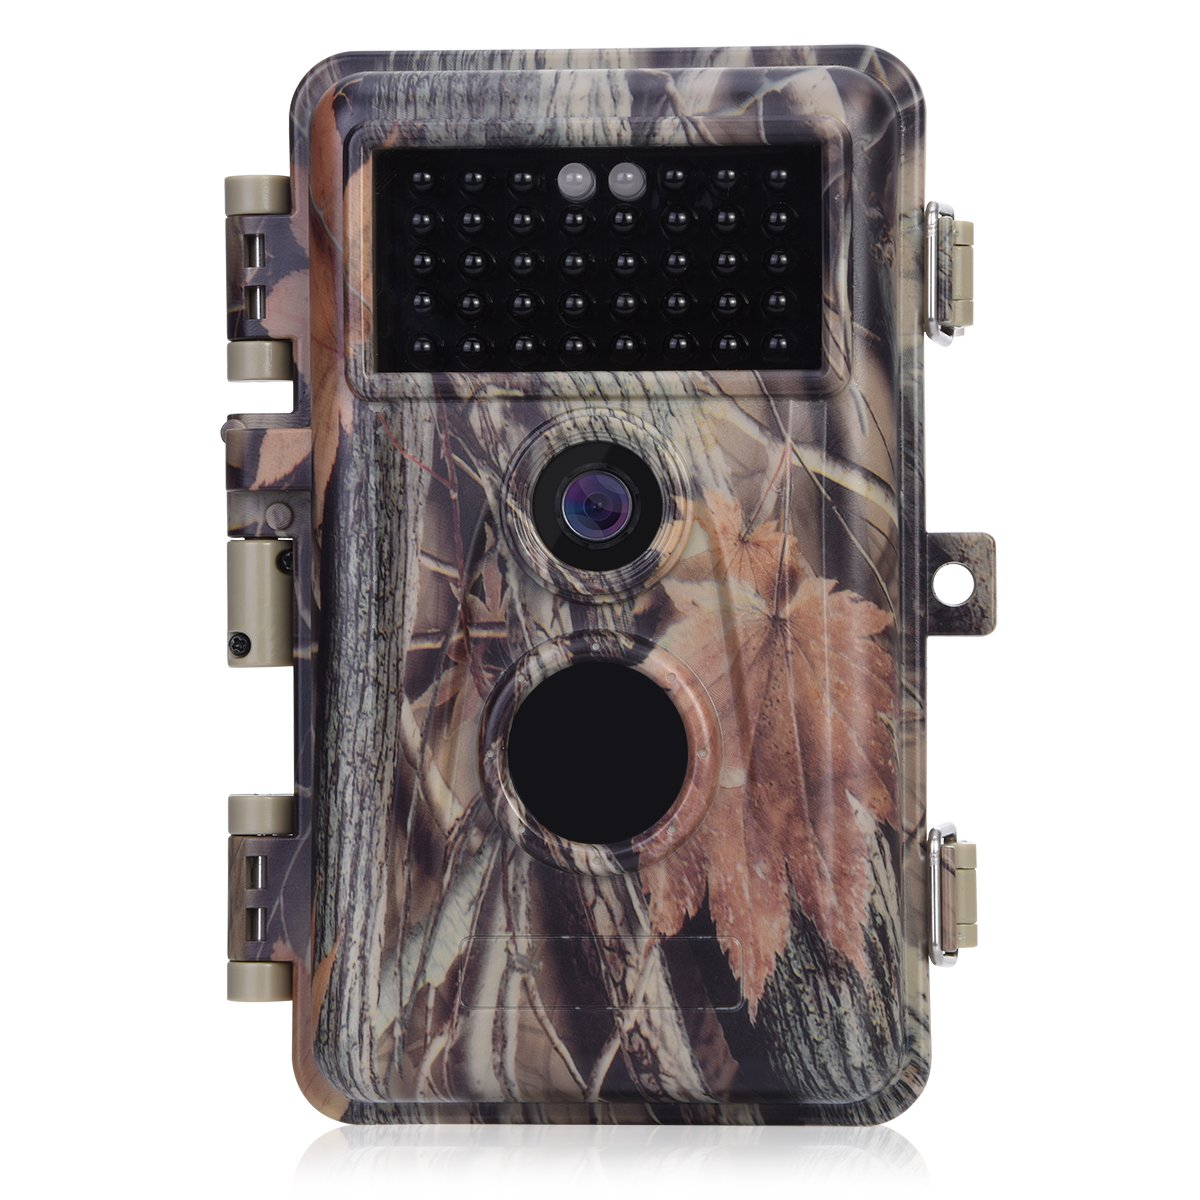 [Upgraded] BlazeVideo 16MP HD 1080P Video Trail Game Camera Hunters Wildlife Hunting Cam No Glow 38 IR LEDs 65ft Night Vision PIR Motion Activated Sensor IP66 Waterproof Password Protected 2.4'' LCD